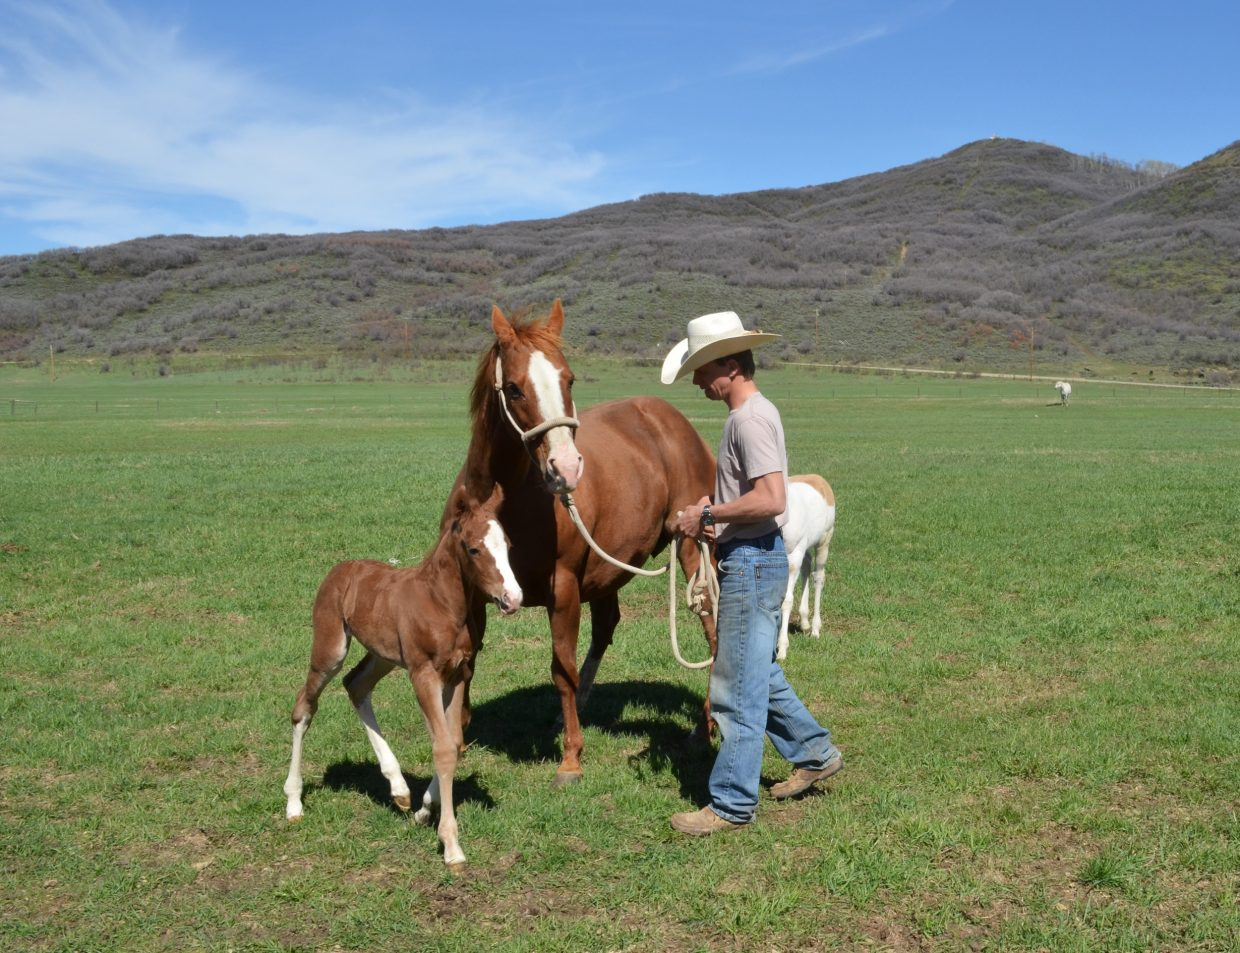 Andy Kurtz introduces a 2-day-old foal named Squirt to the big green world for the first time May 13 on the Kurtz Ranch in the upper Elk River Valley. The mare is Red Bell Pepper.